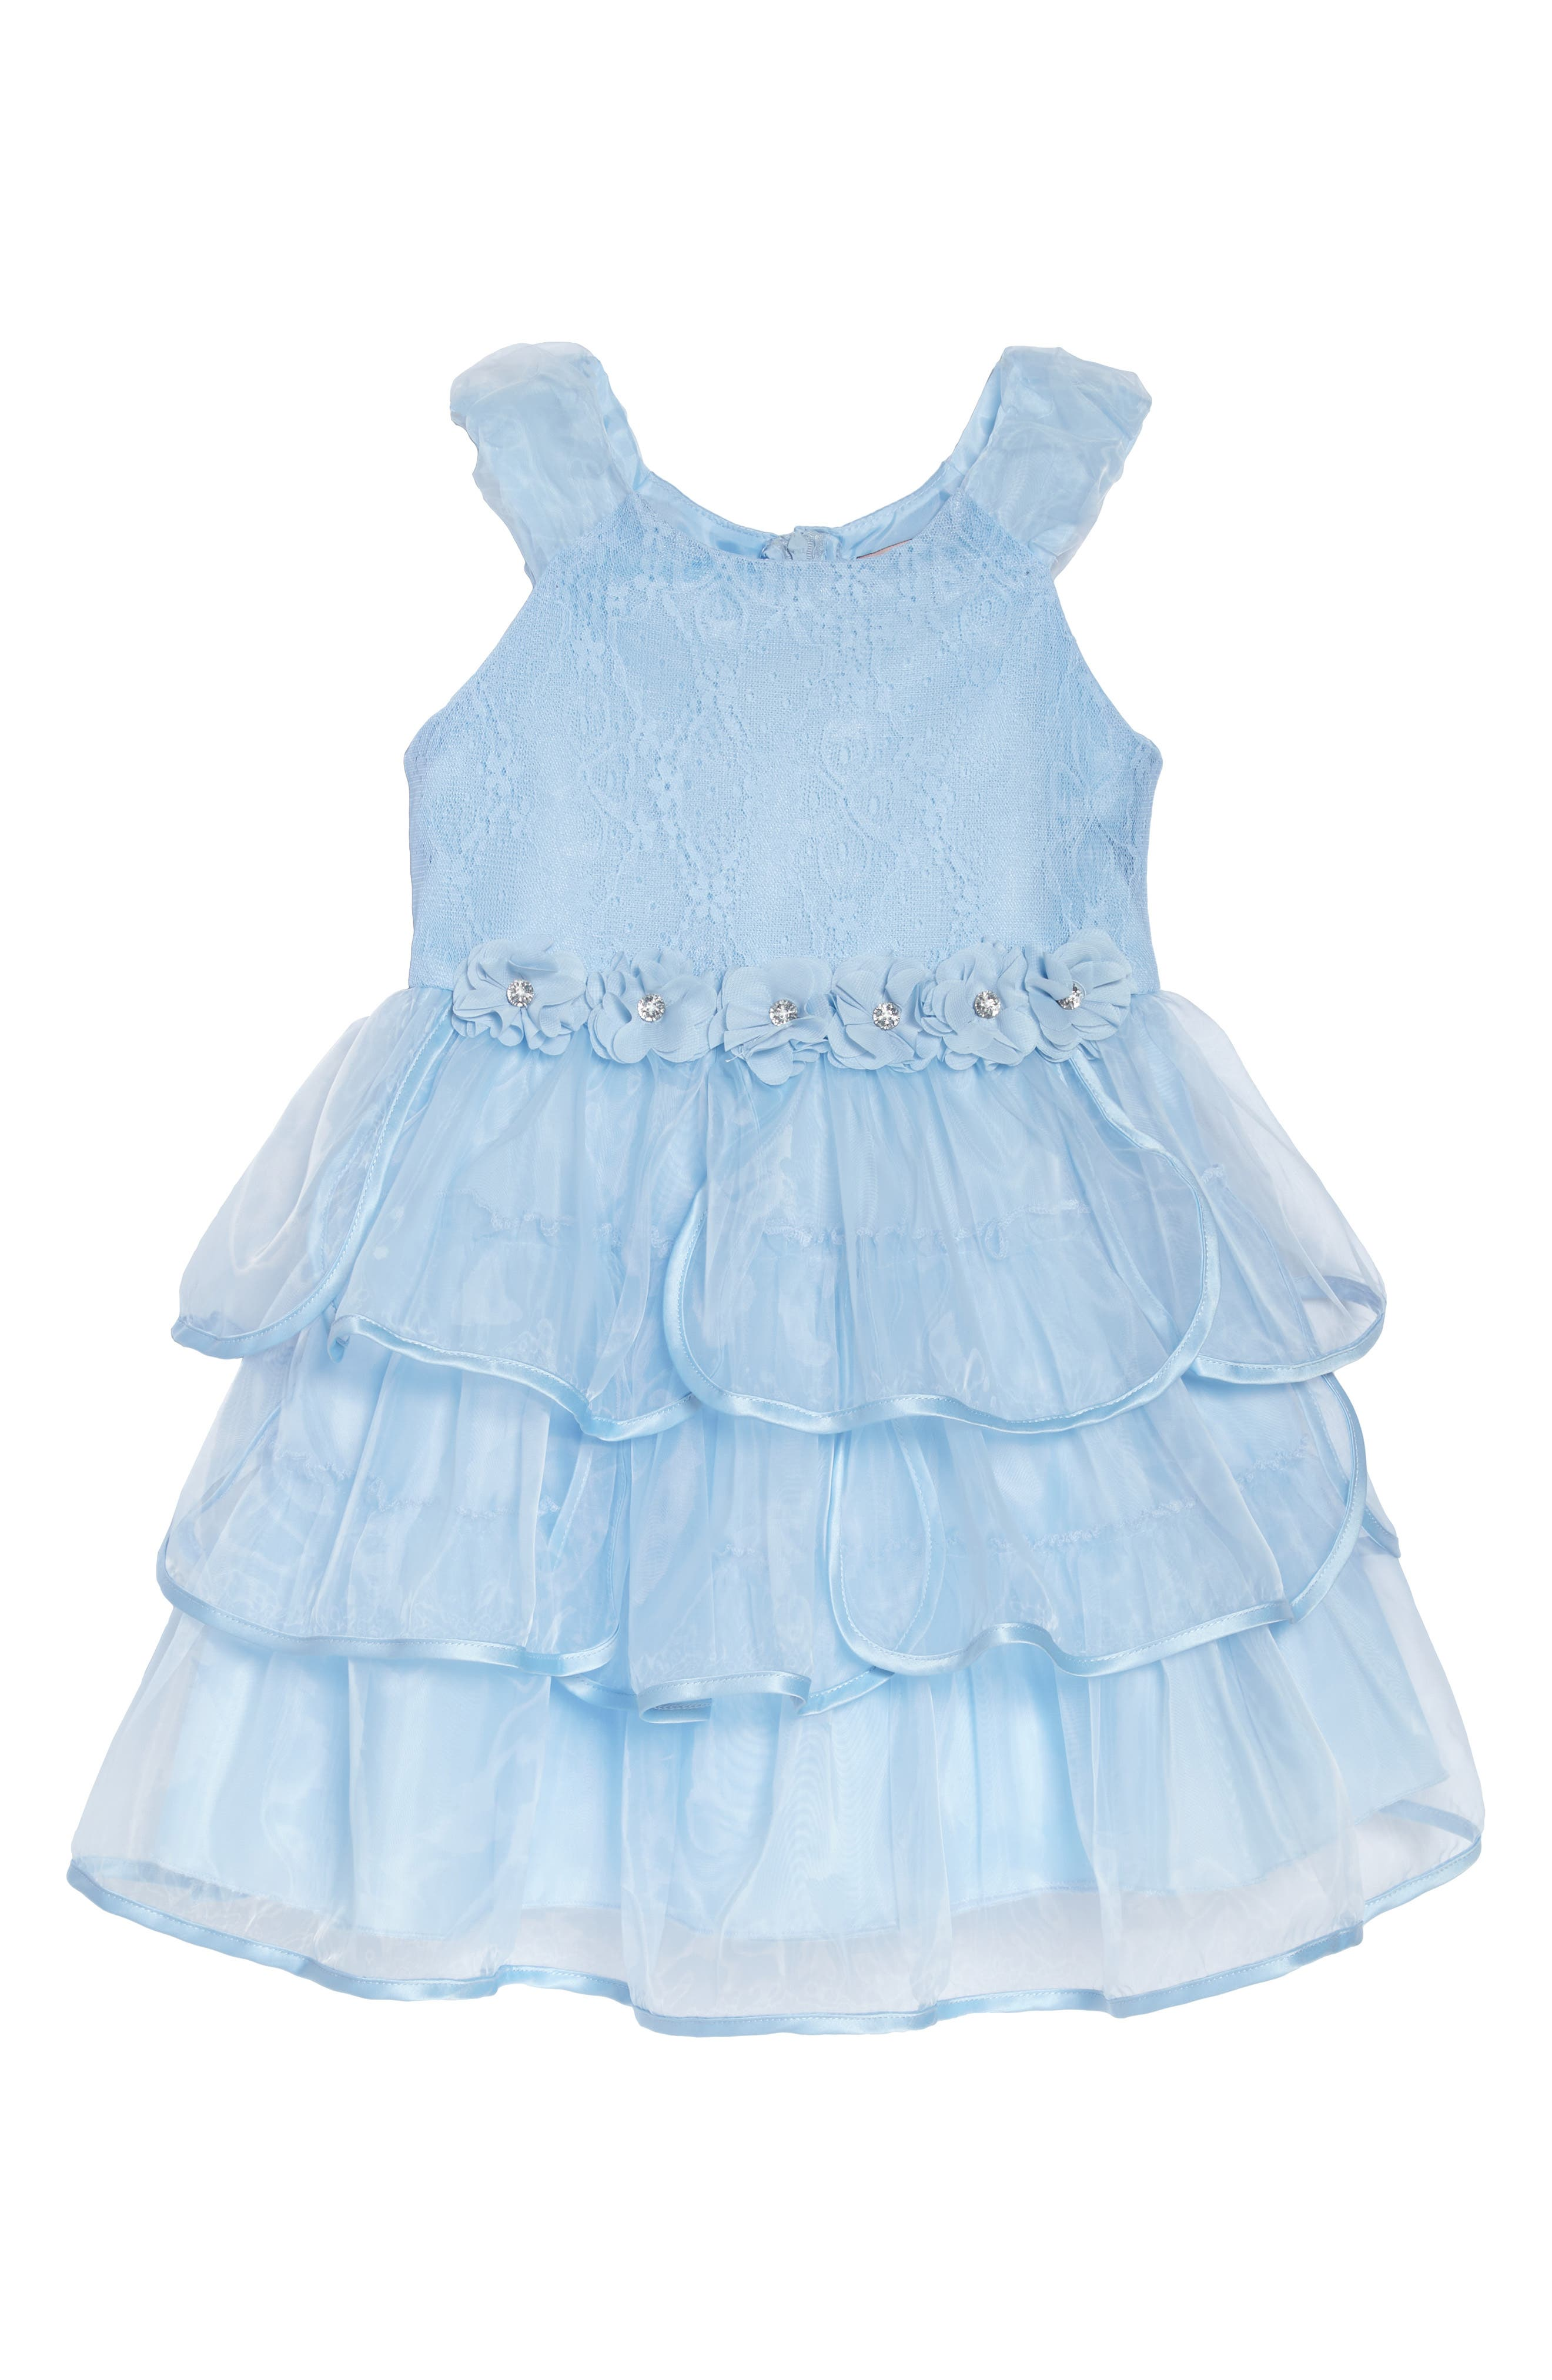 Tiered Organza Party Dress,                         Main,                         color, 452